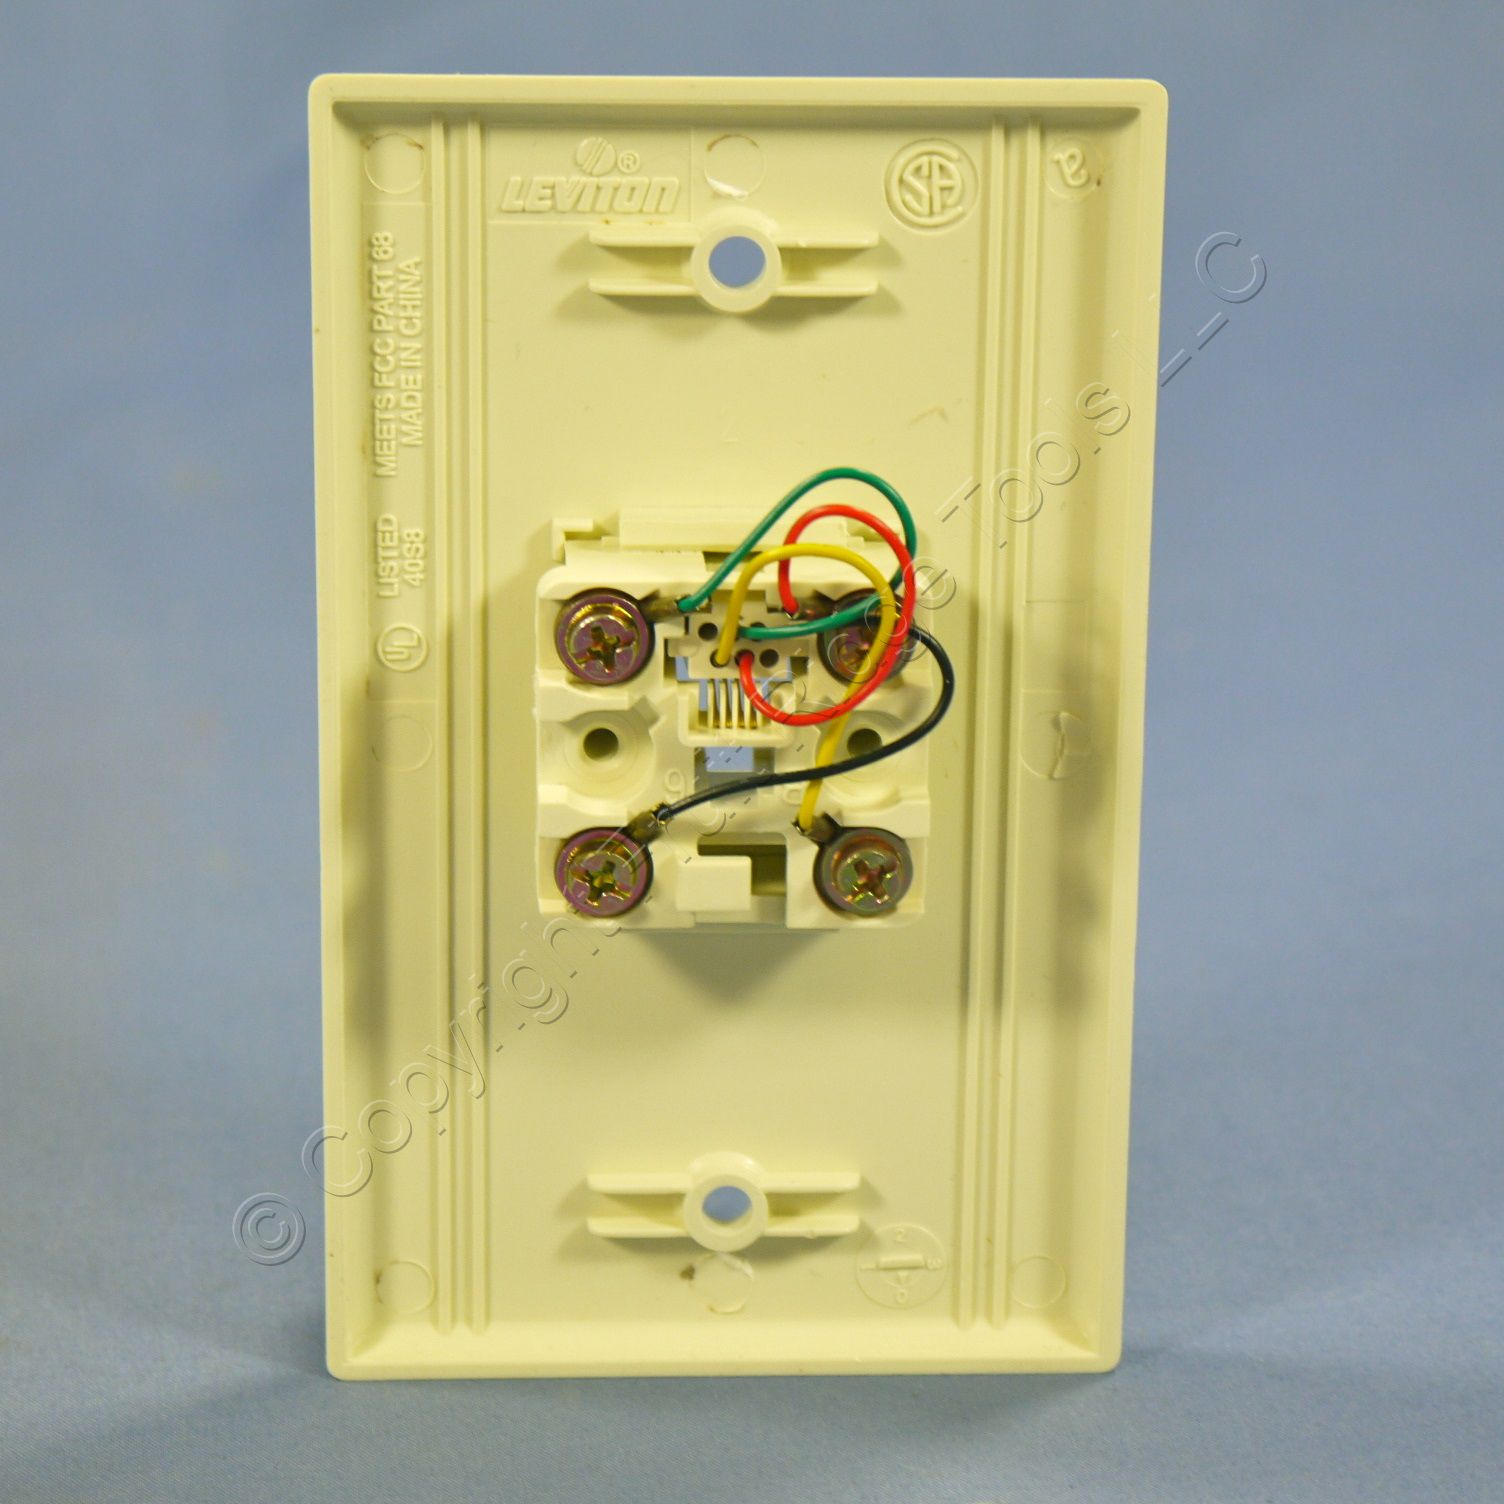 10 leviton almond phone wall plates 4 wire telephone 40249 a ebay